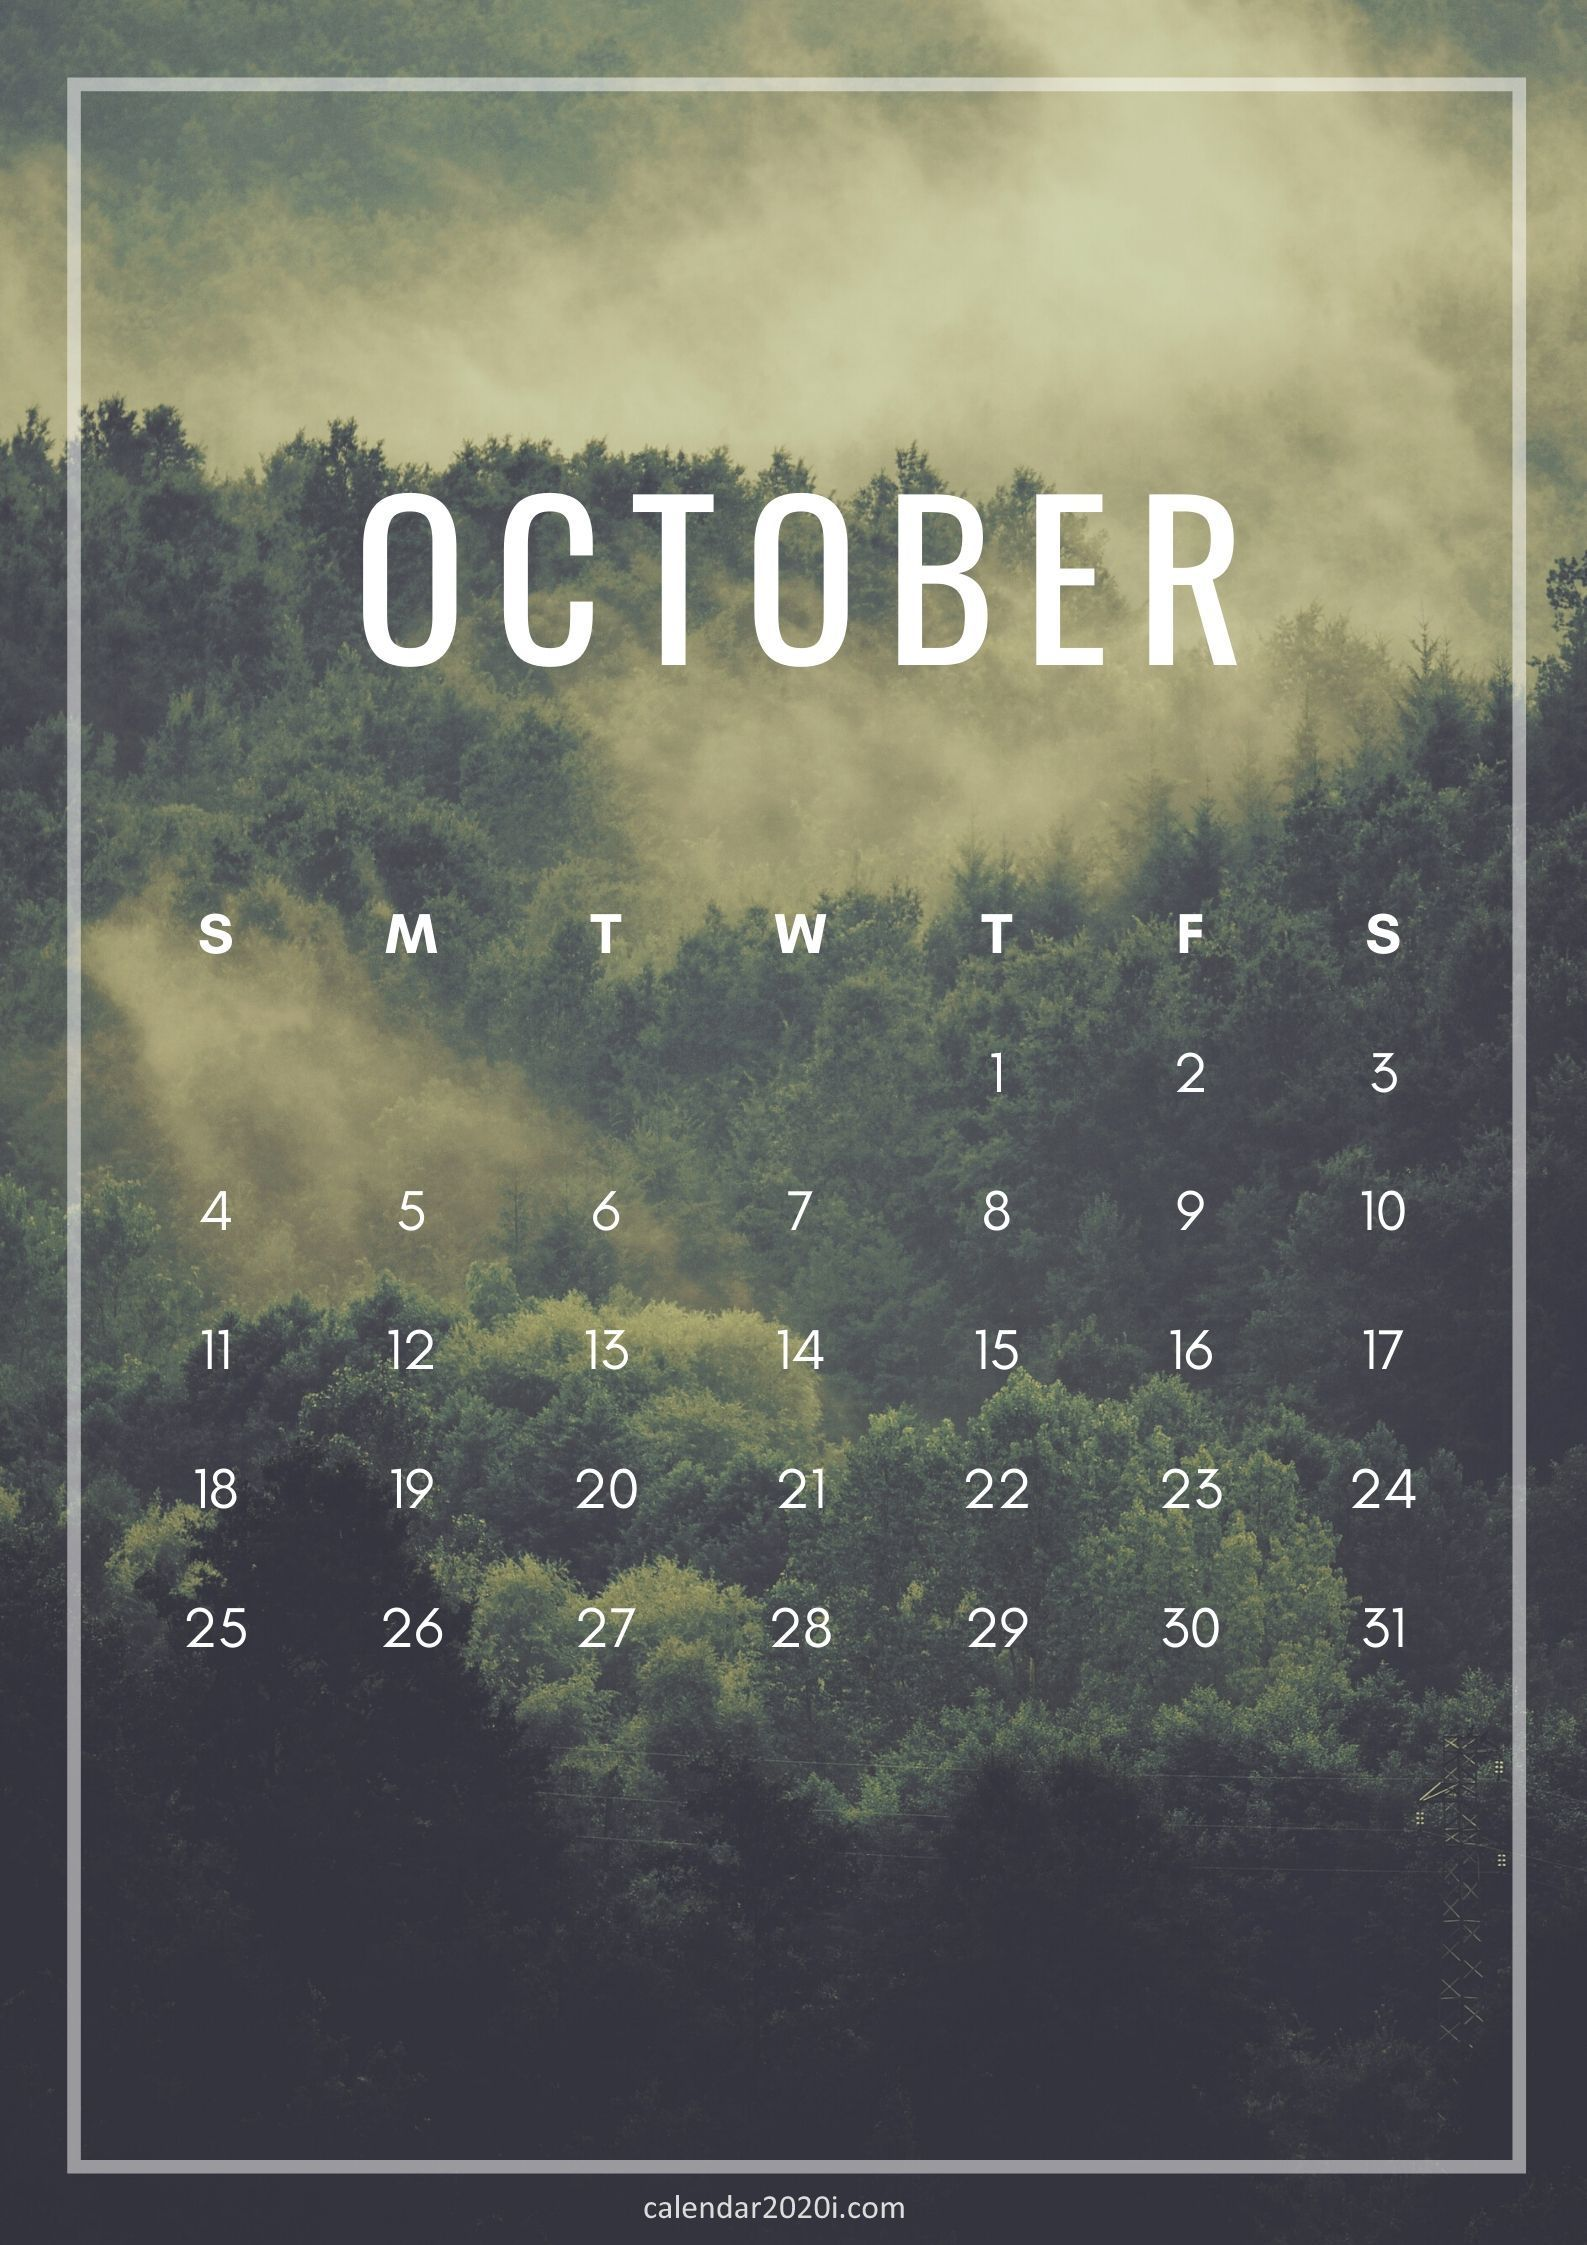 October 2020 Calendar Wallpapers Wallpaper Cave